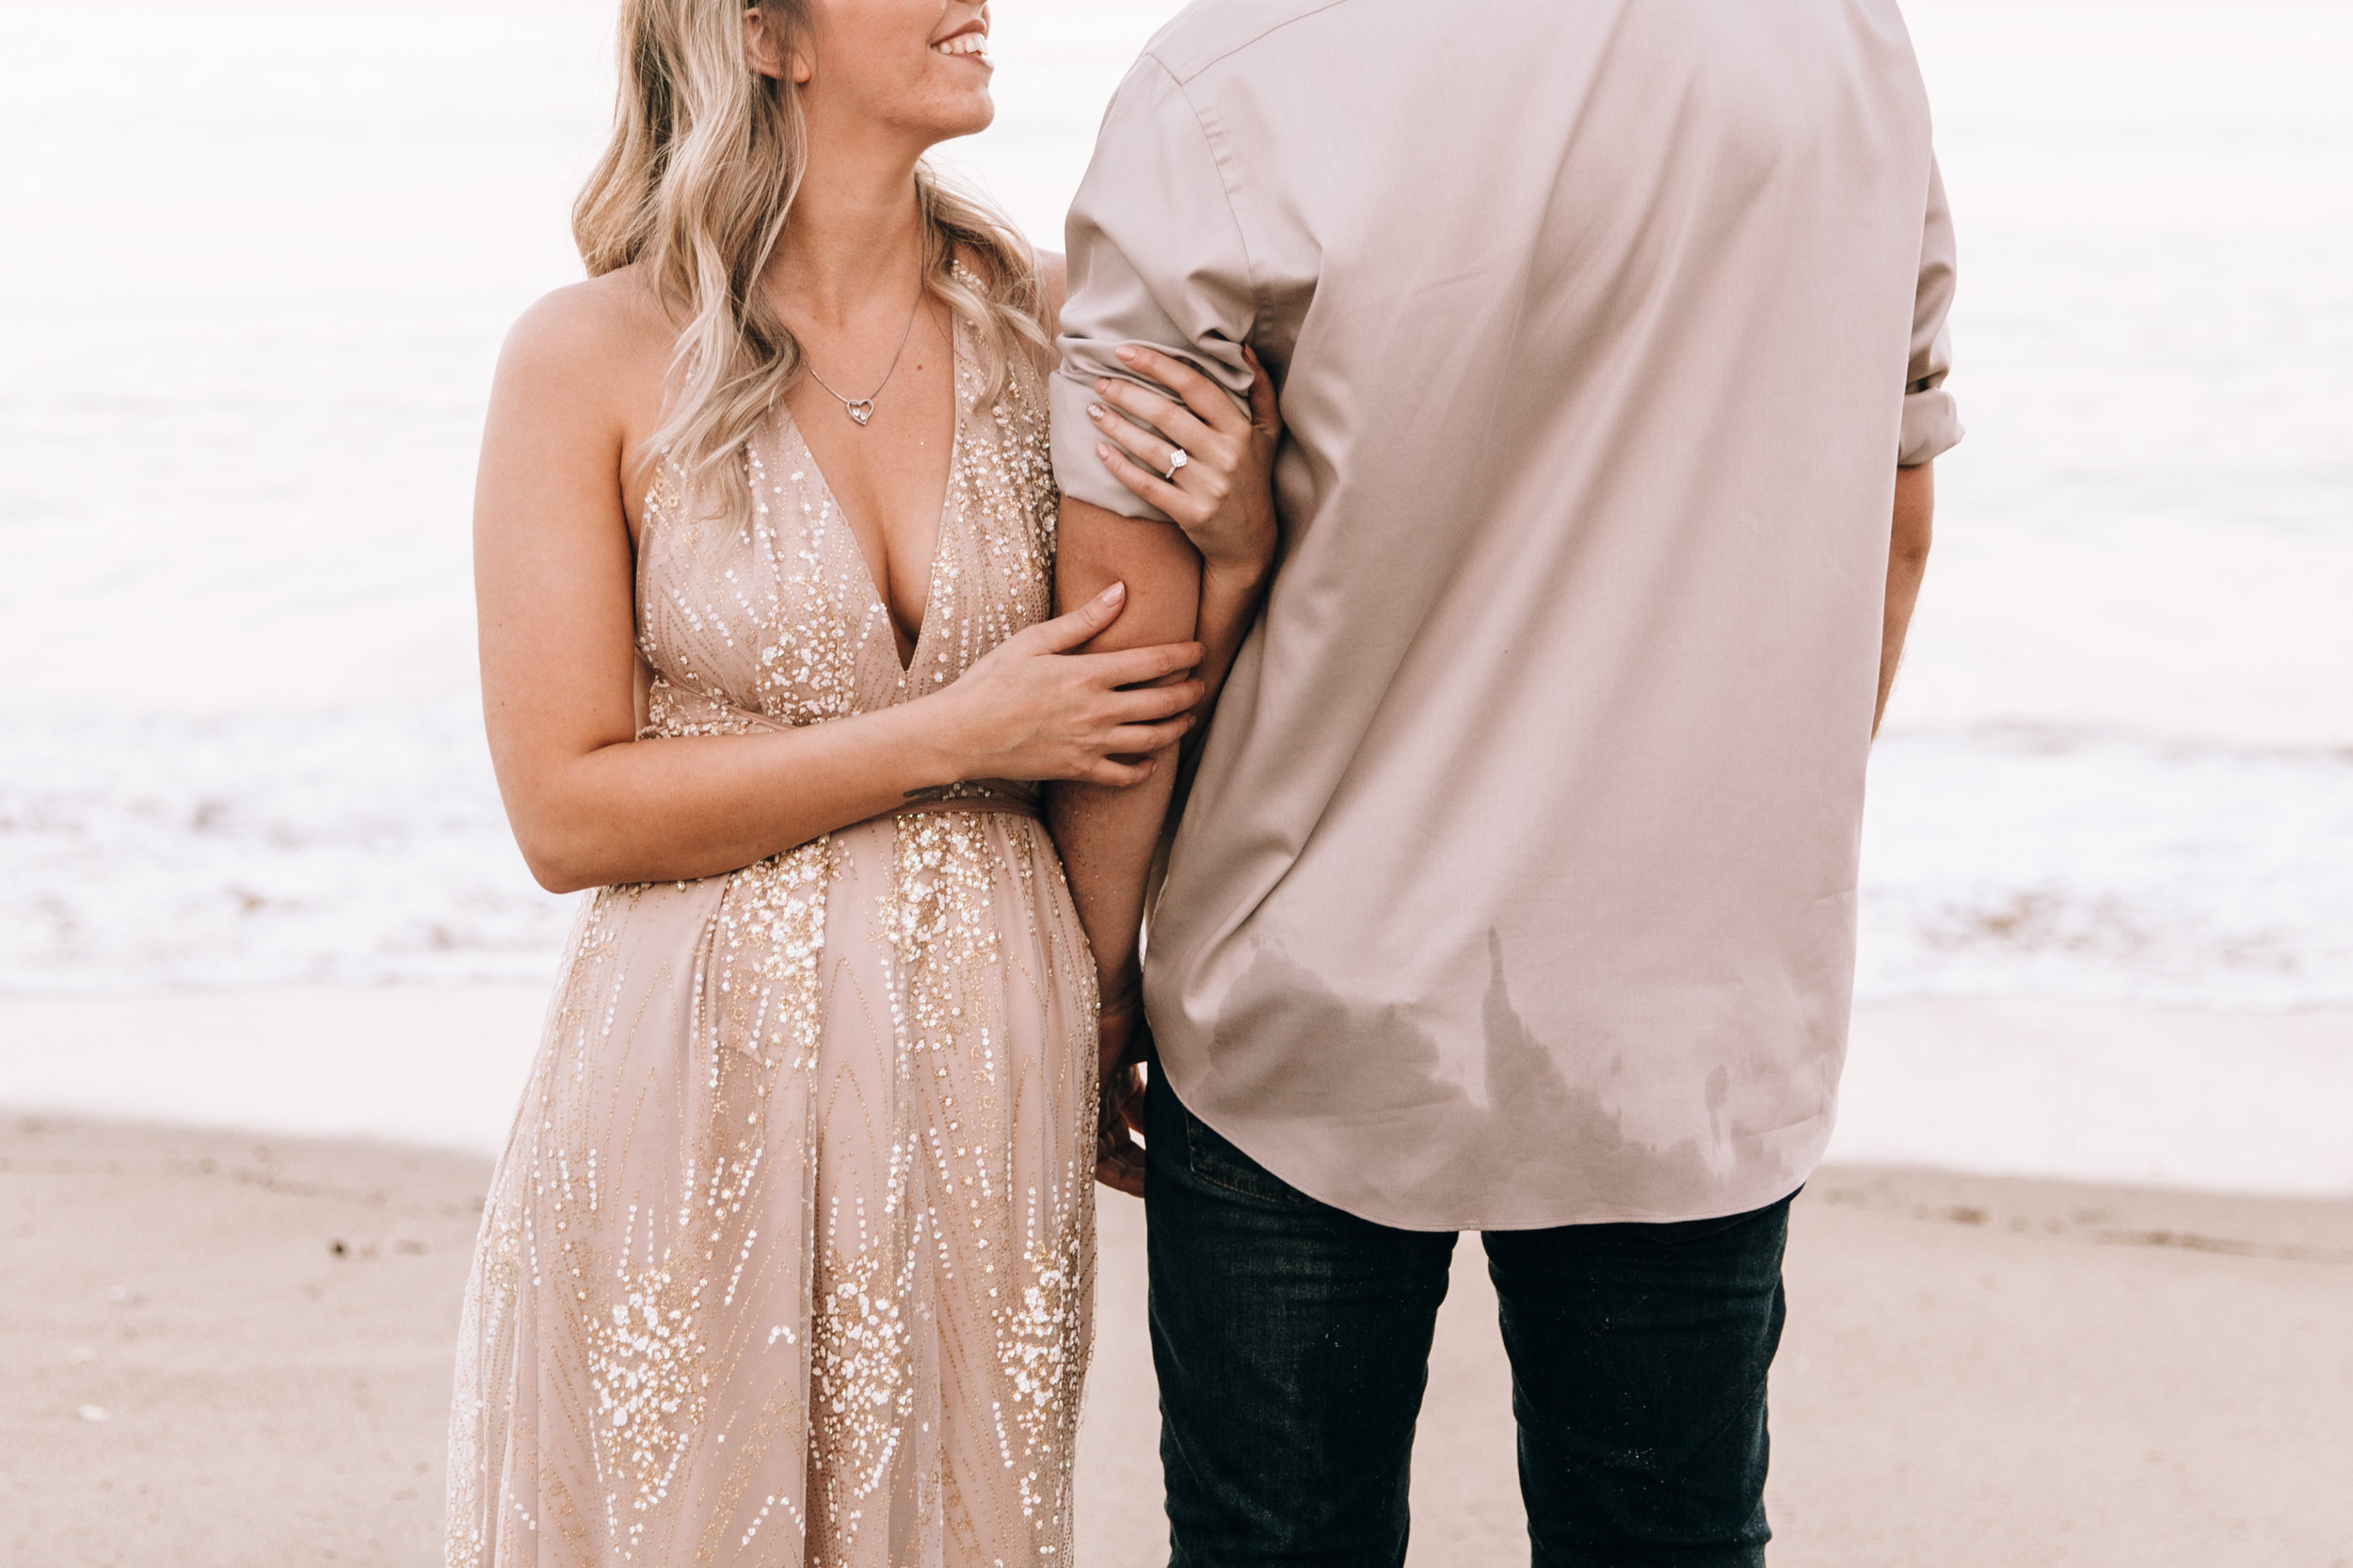 Malibu engagement photographer, SoCal engagement photographer, Southern California engagement photographer, Los Angeles engagement photographer, Malibu Creek State Park engagement shoot, Paradise Cove